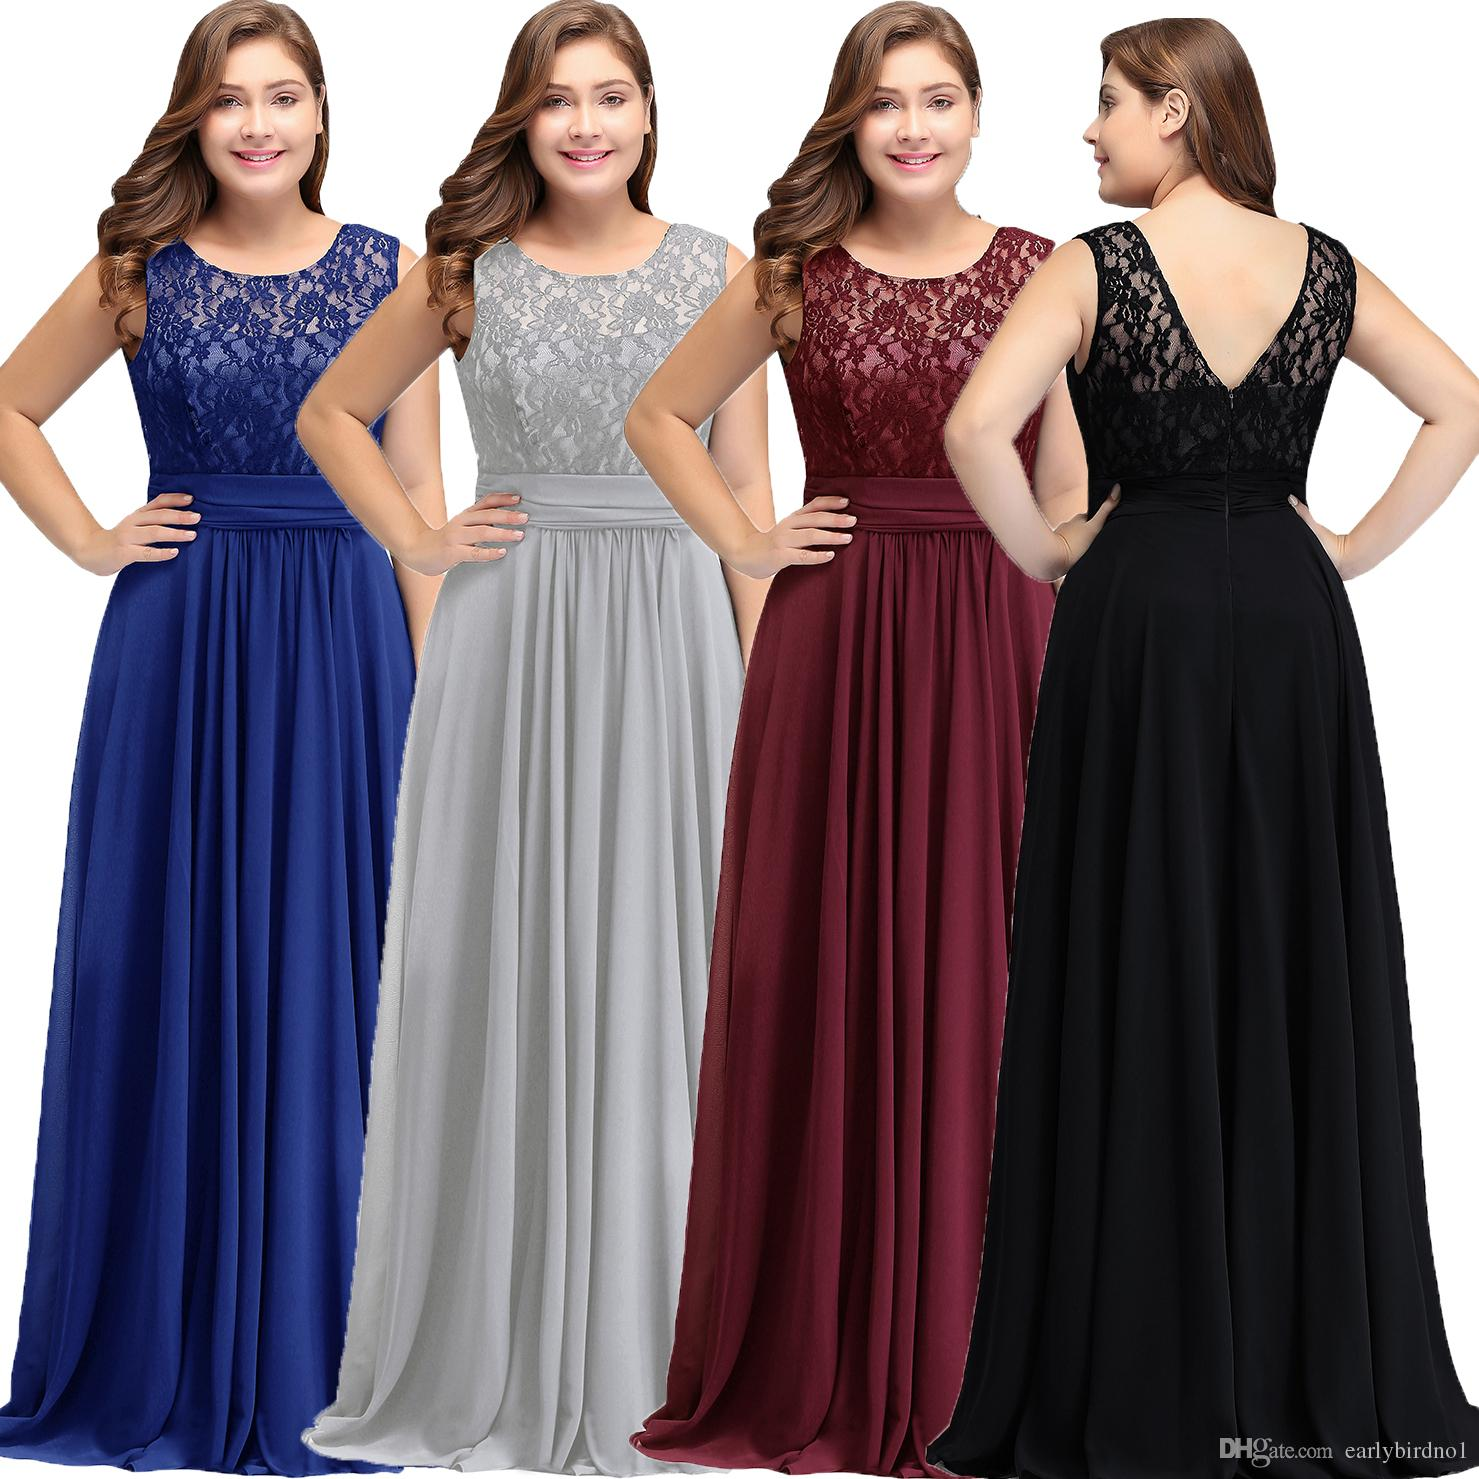 New Simple Modest Dark Navy Chiffon Bridesmaid Dresses Plus Size 2018 Cheap  Scoop Sleeveless A Line Formal Wedding Guests Party Wear CPS526 Raspberry  ...